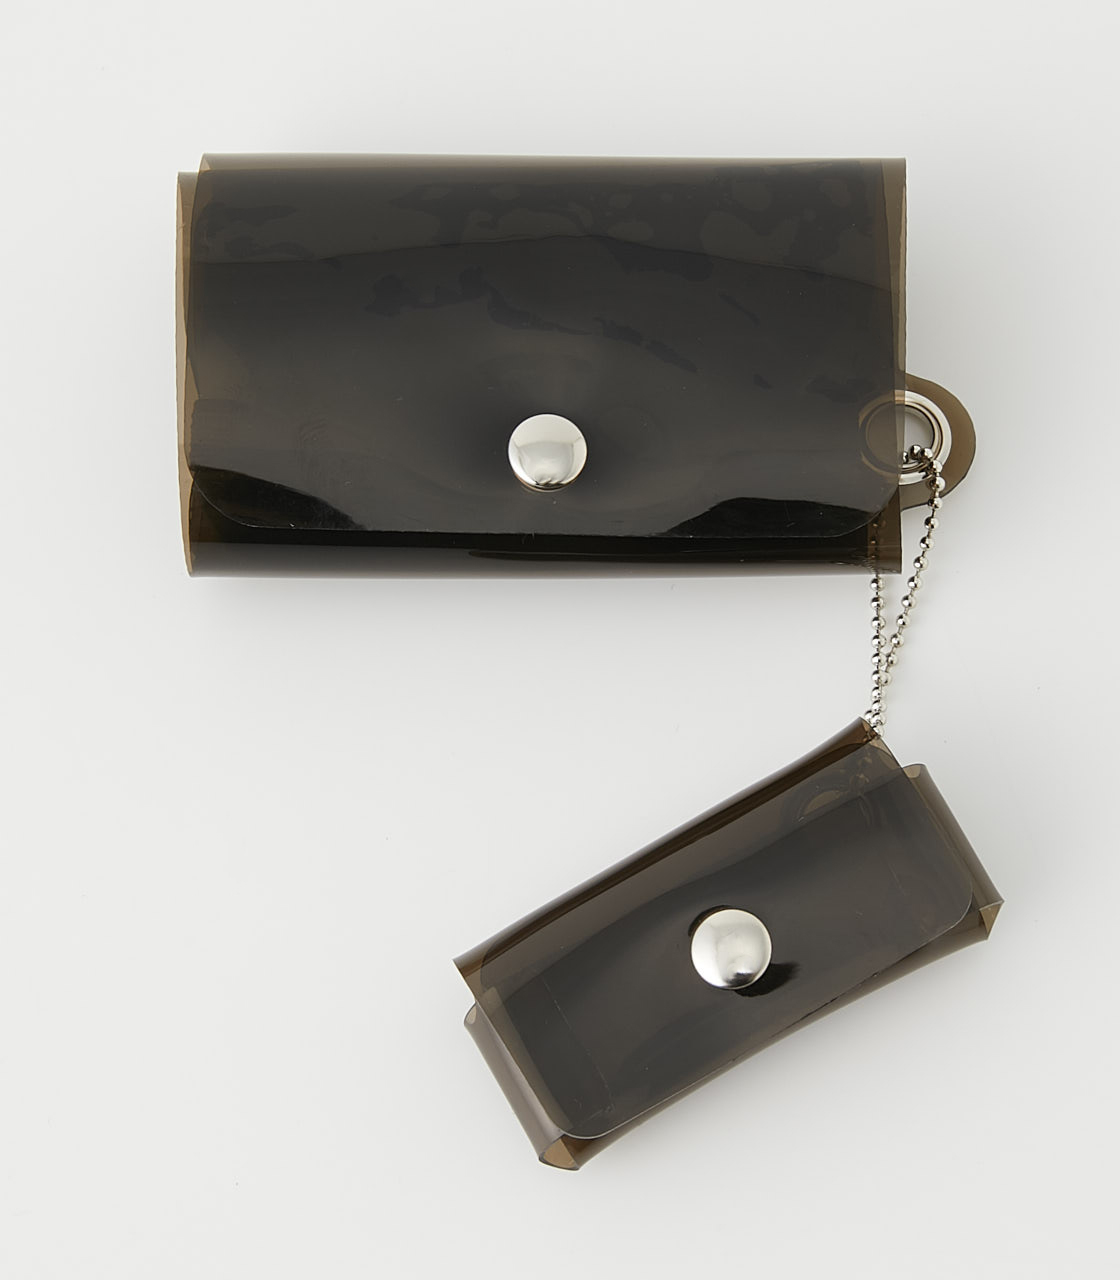 CLEAR MINI WALLET 詳細画像 L/BLK 1